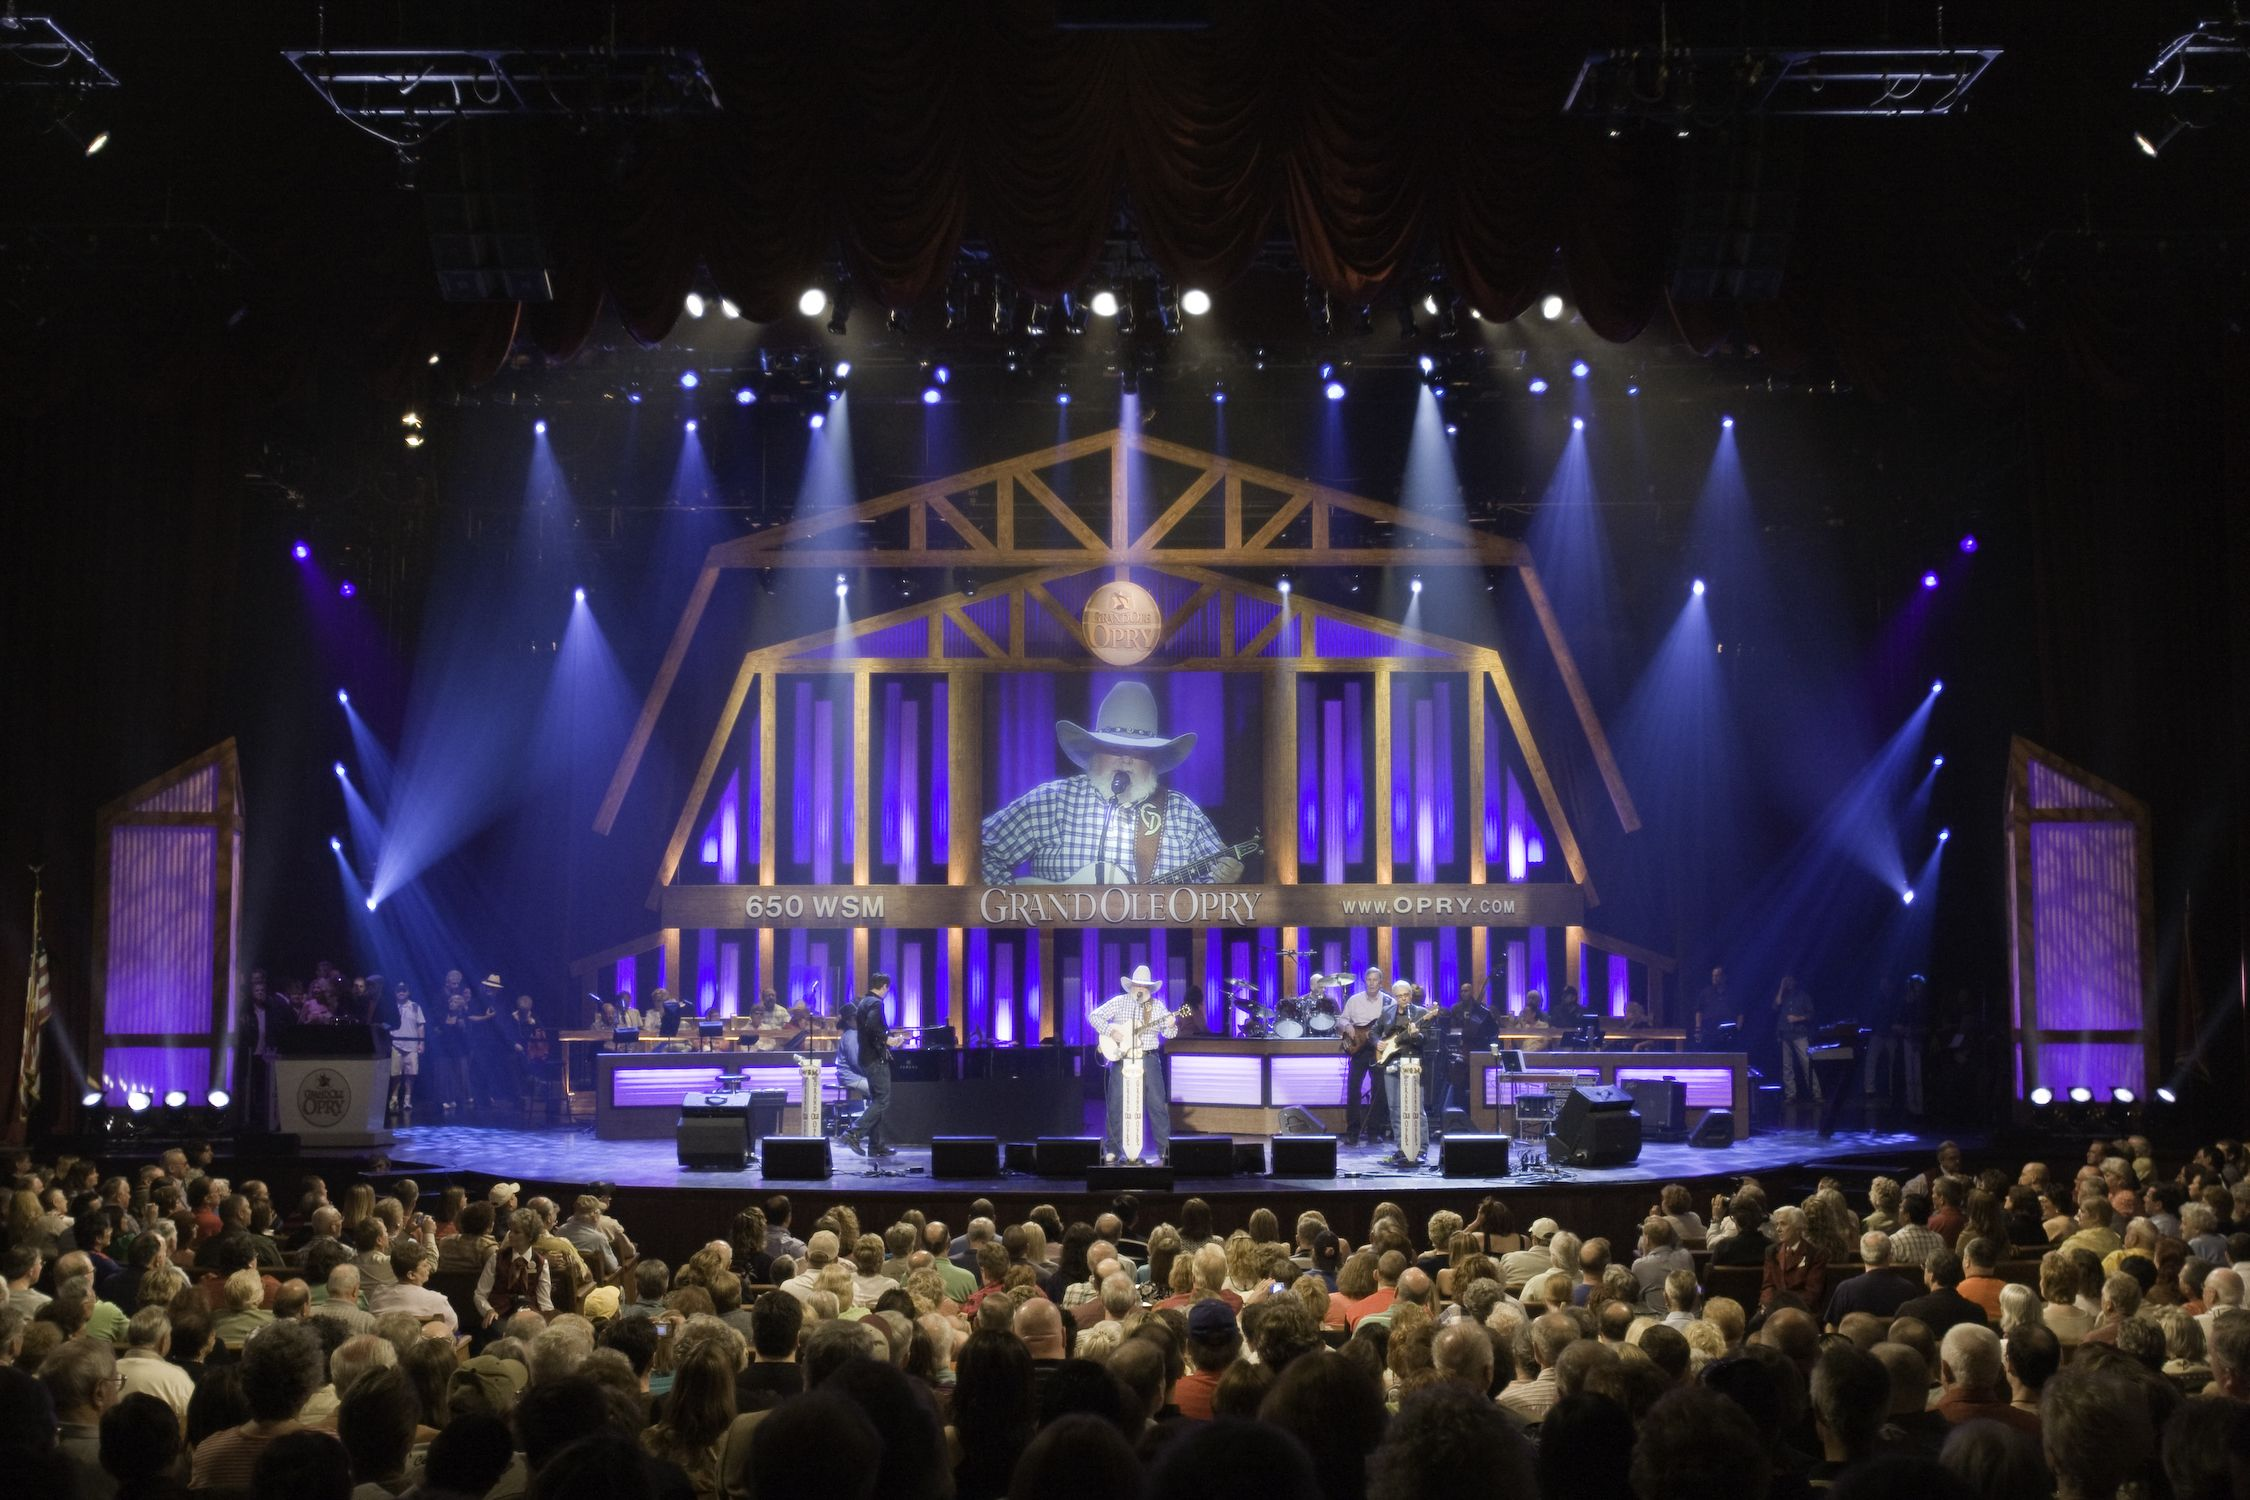 Grand Ole Opry Performance